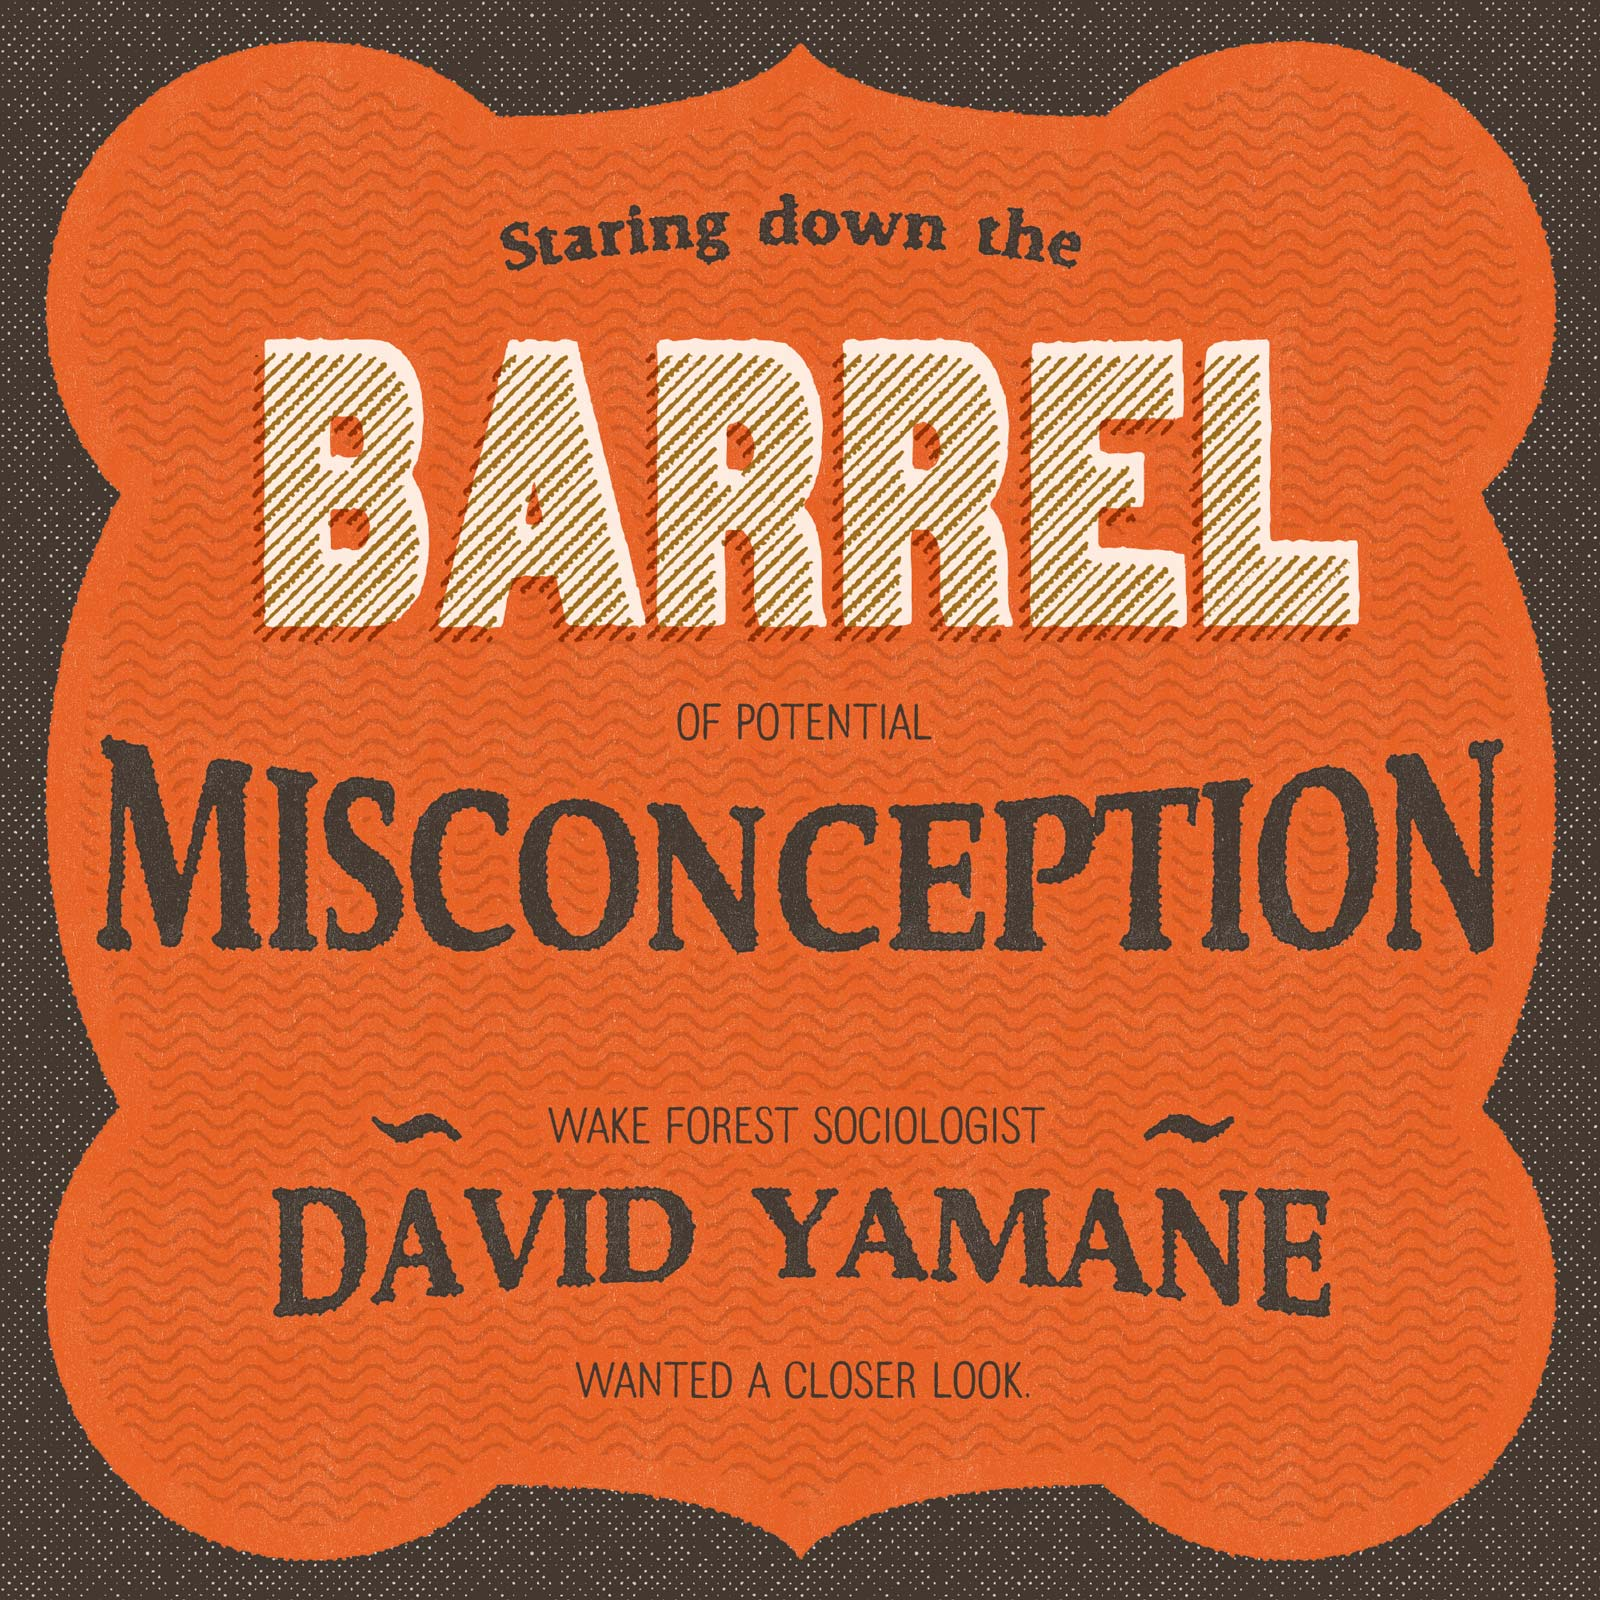 Staring down the barrel of potential misconception, Wake Forest sociologist David Yamane wanted a closer look.